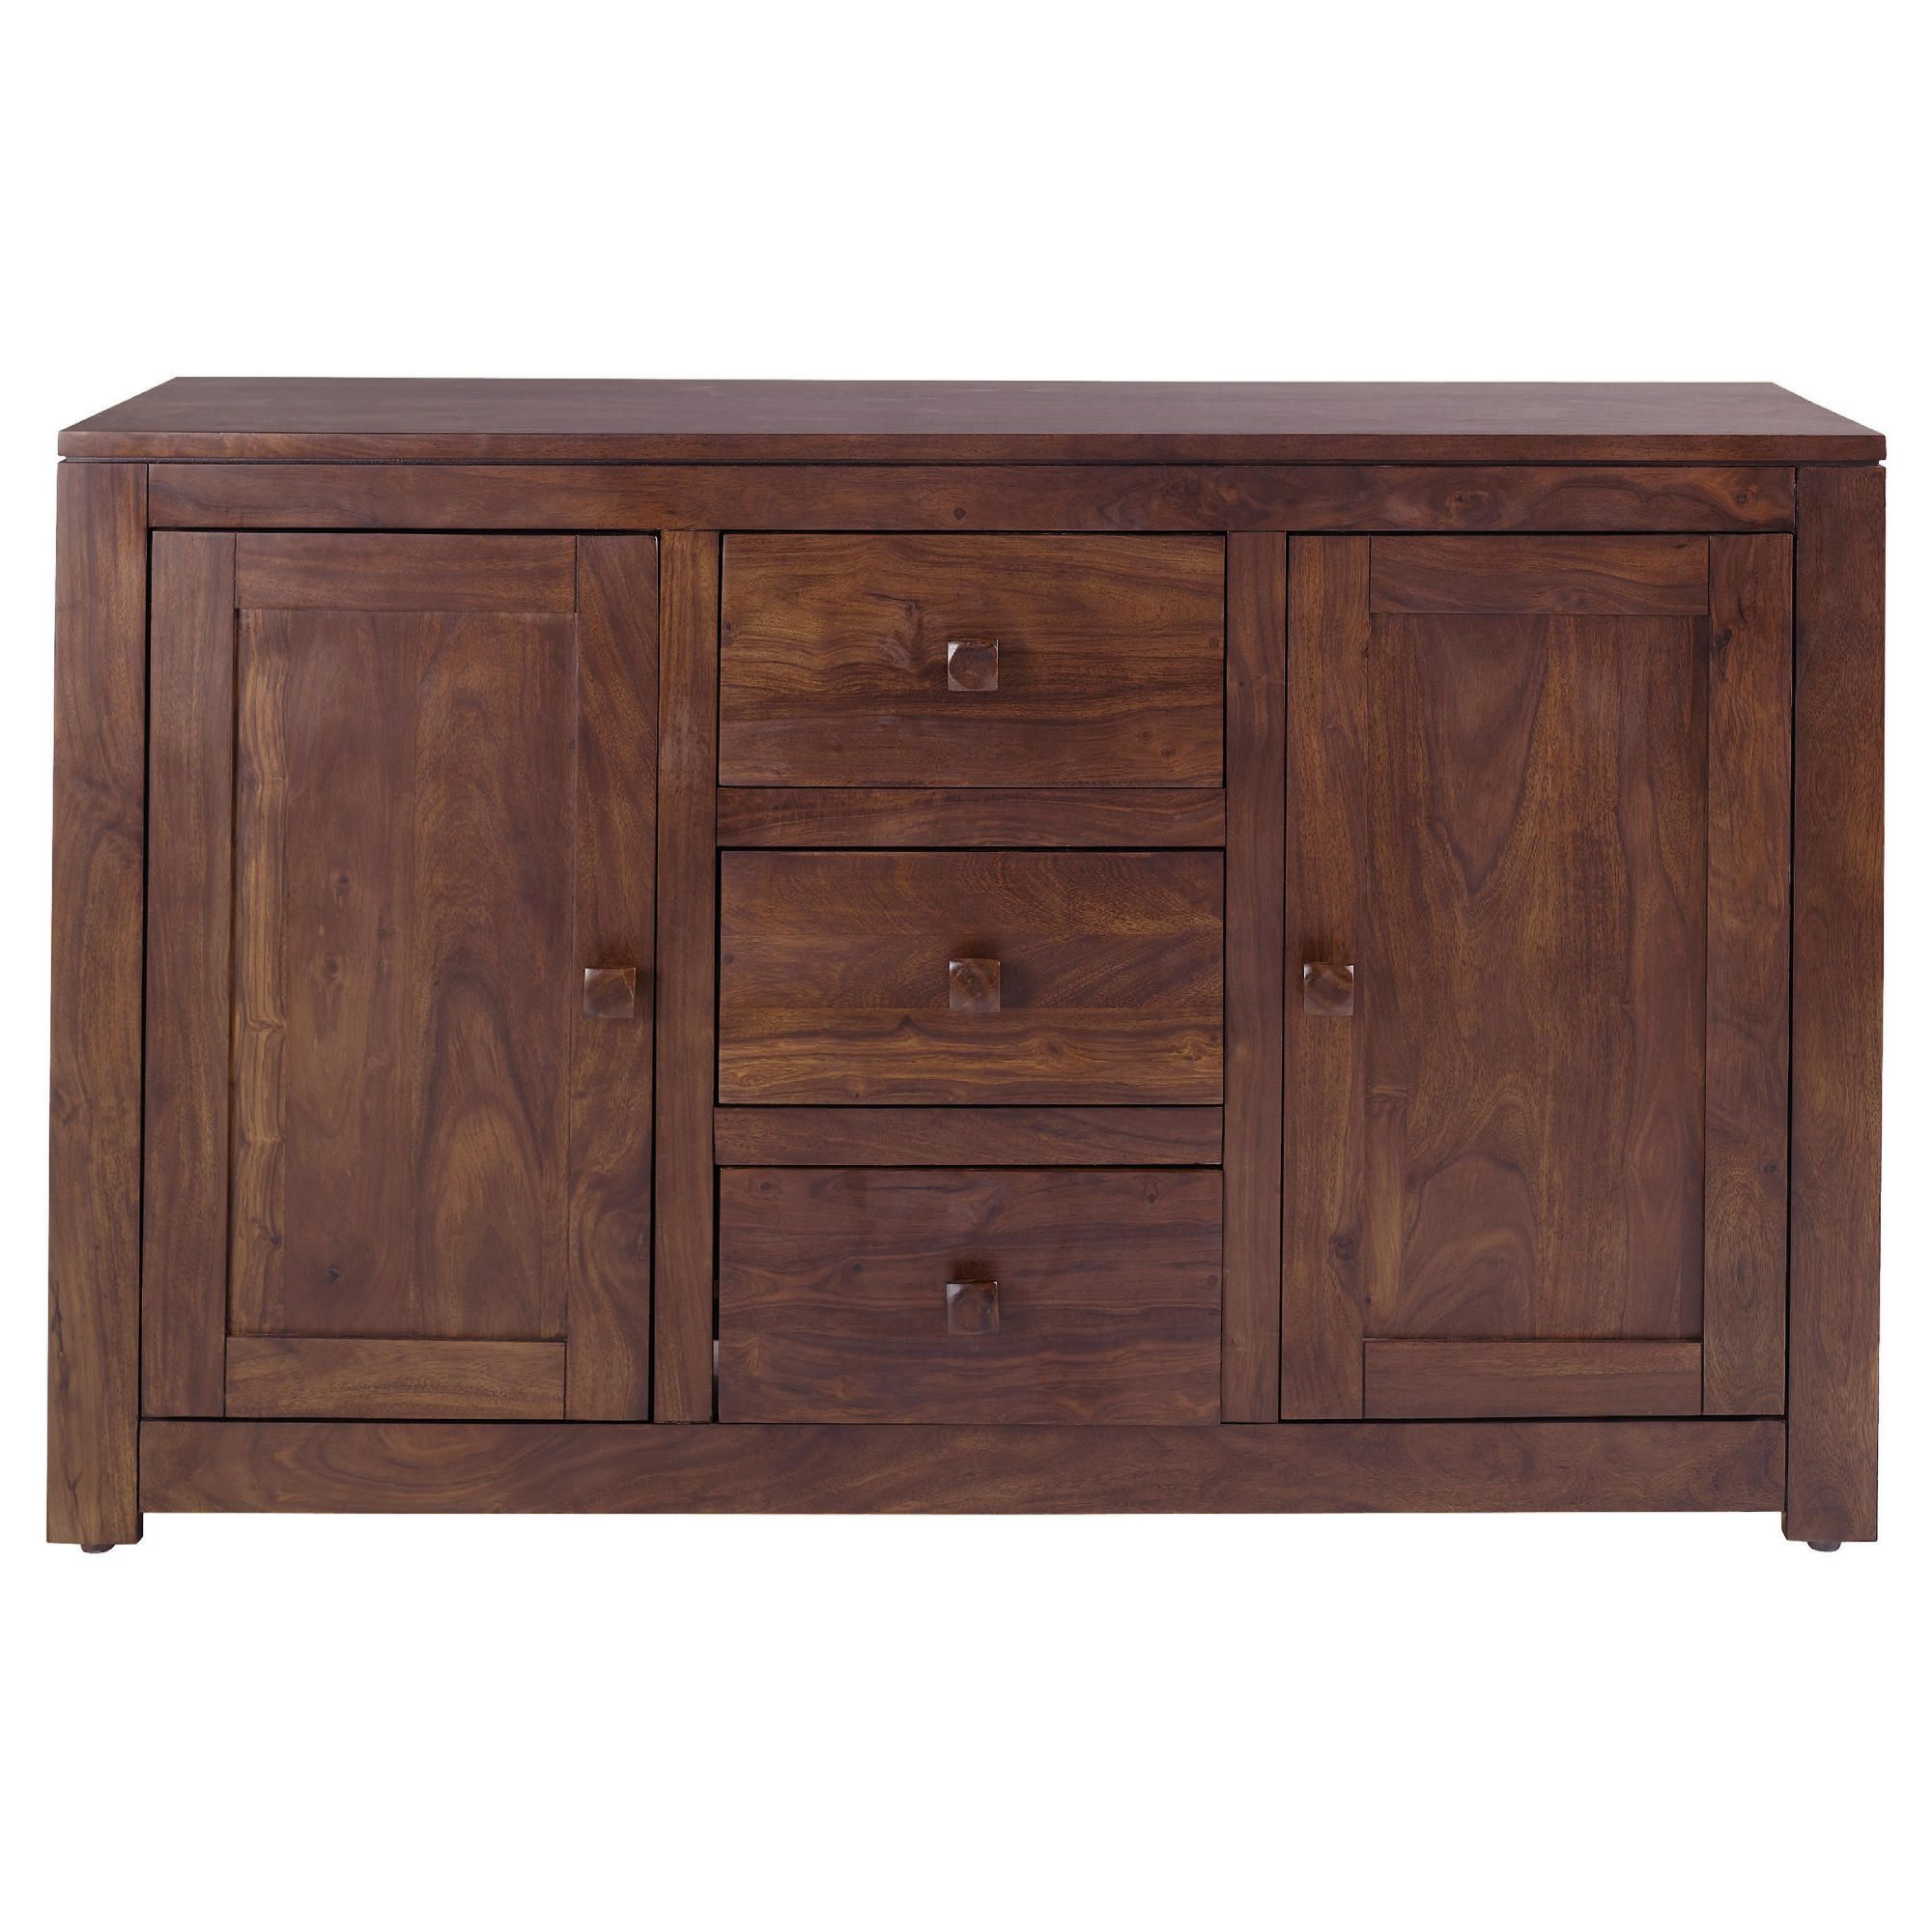 Tamarai 3 Drawer 2 Door Sideboard, Sheesham at Tesco Direct